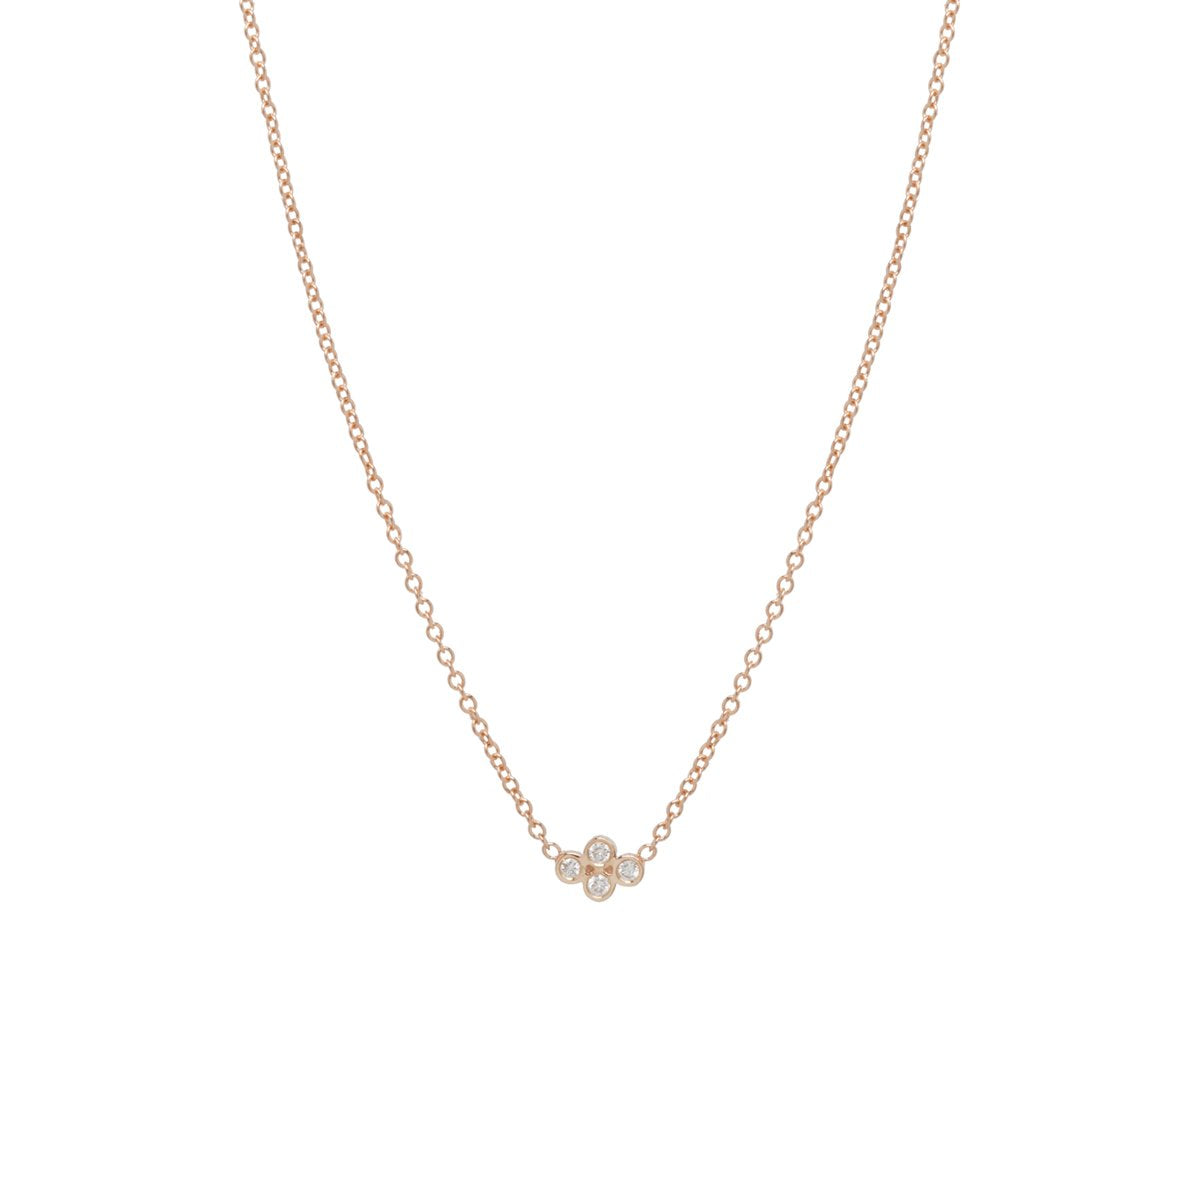 Tiny Bezel Diamond Quad Necklace | Art + Soul Gallery